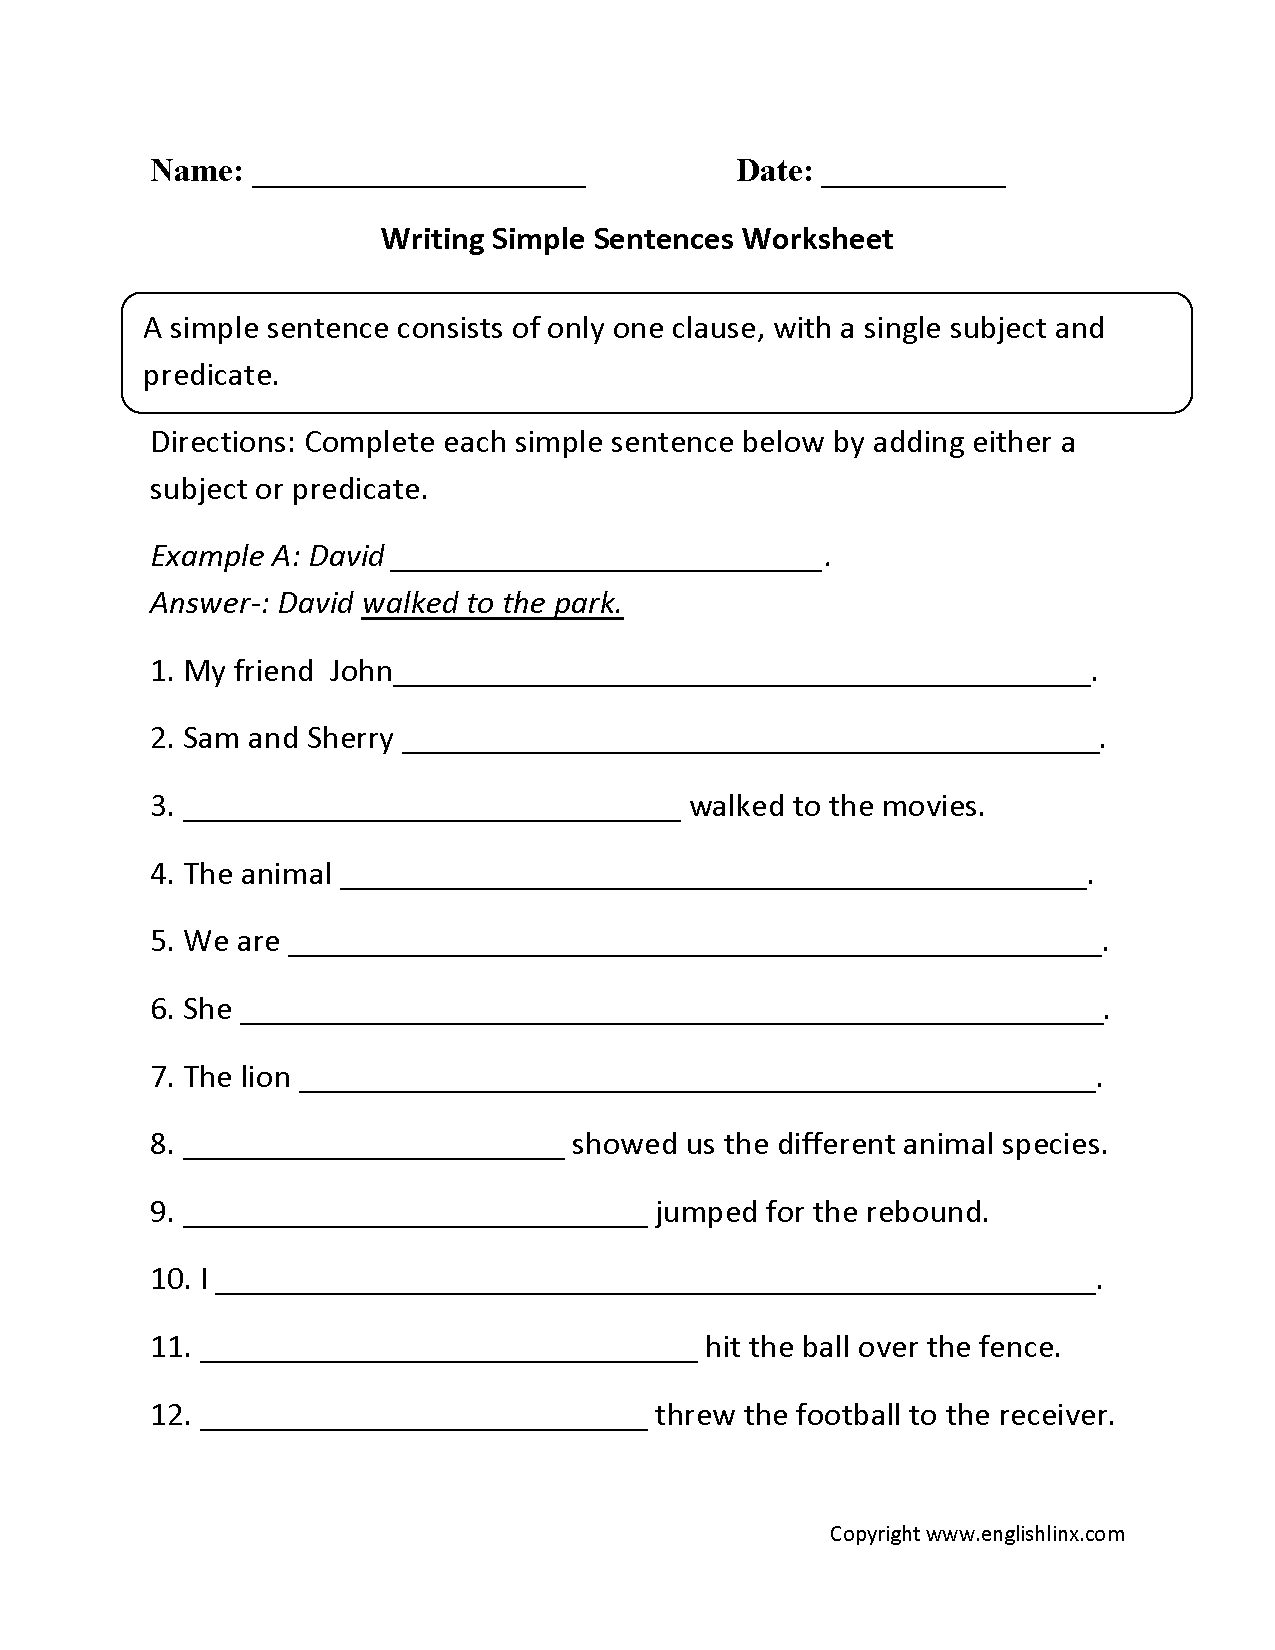 Free Worksheet Fourth Grade Writing Worksheets sentences worksheets simple worksheets